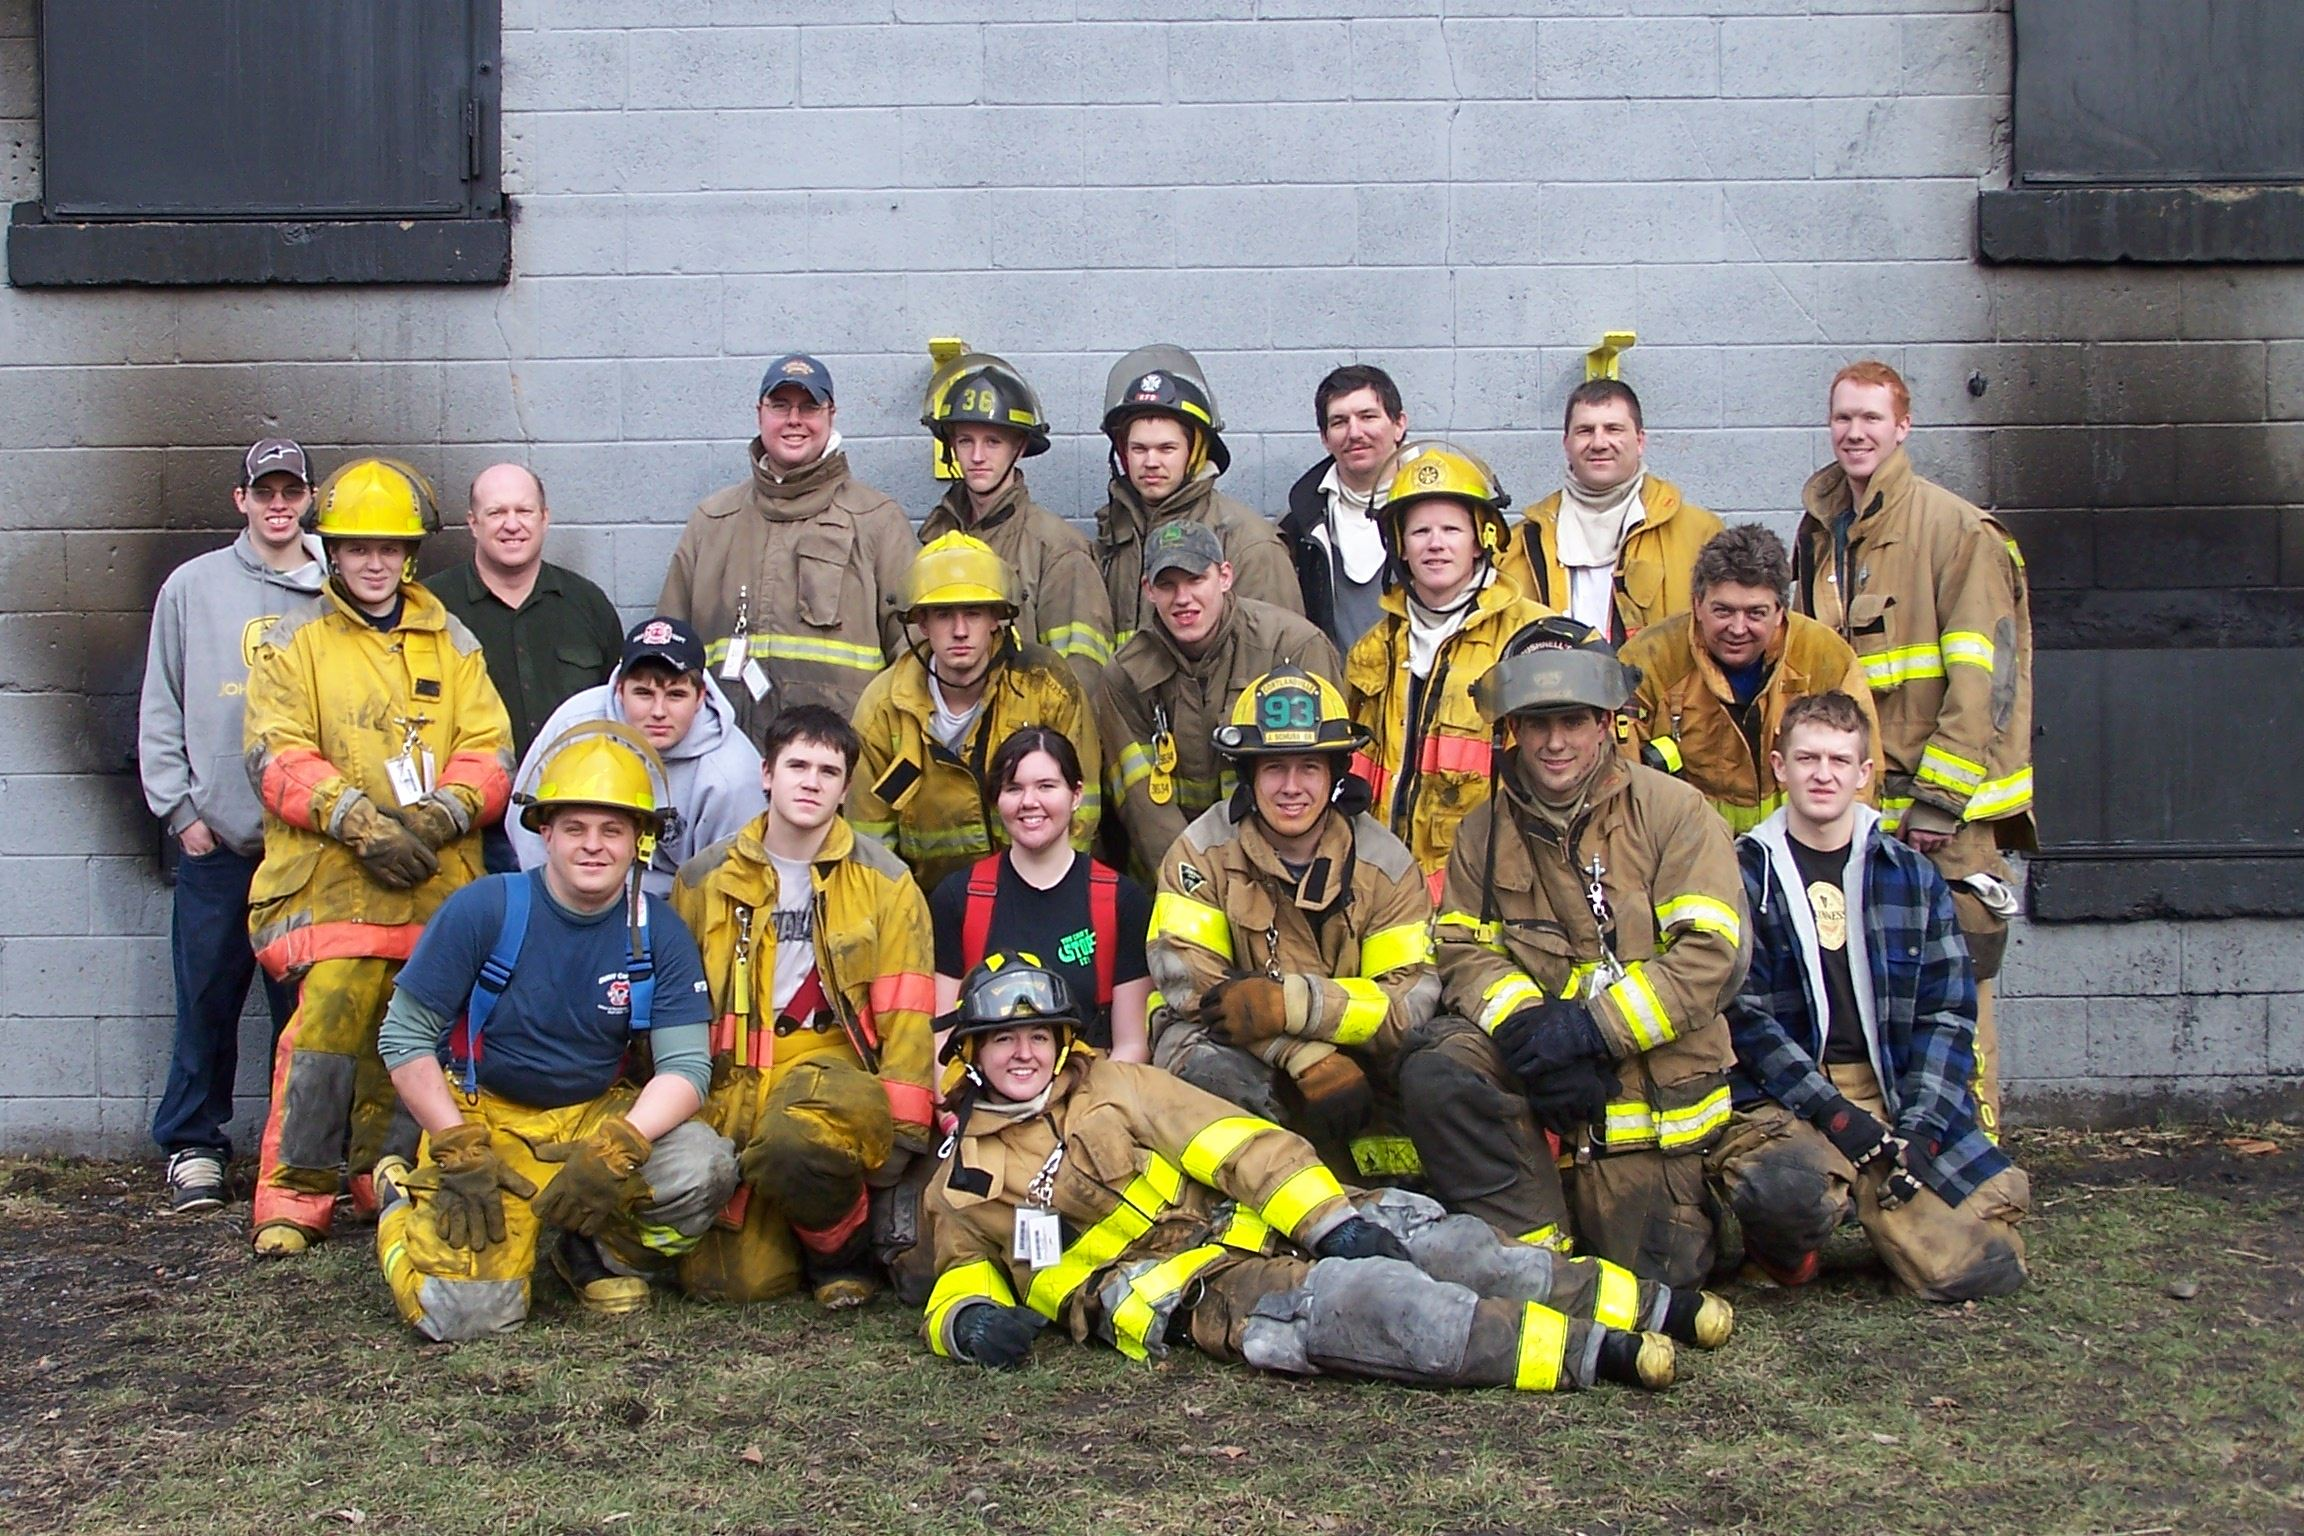 A group of firefighters pose for a picture in front of a building of cement stones.